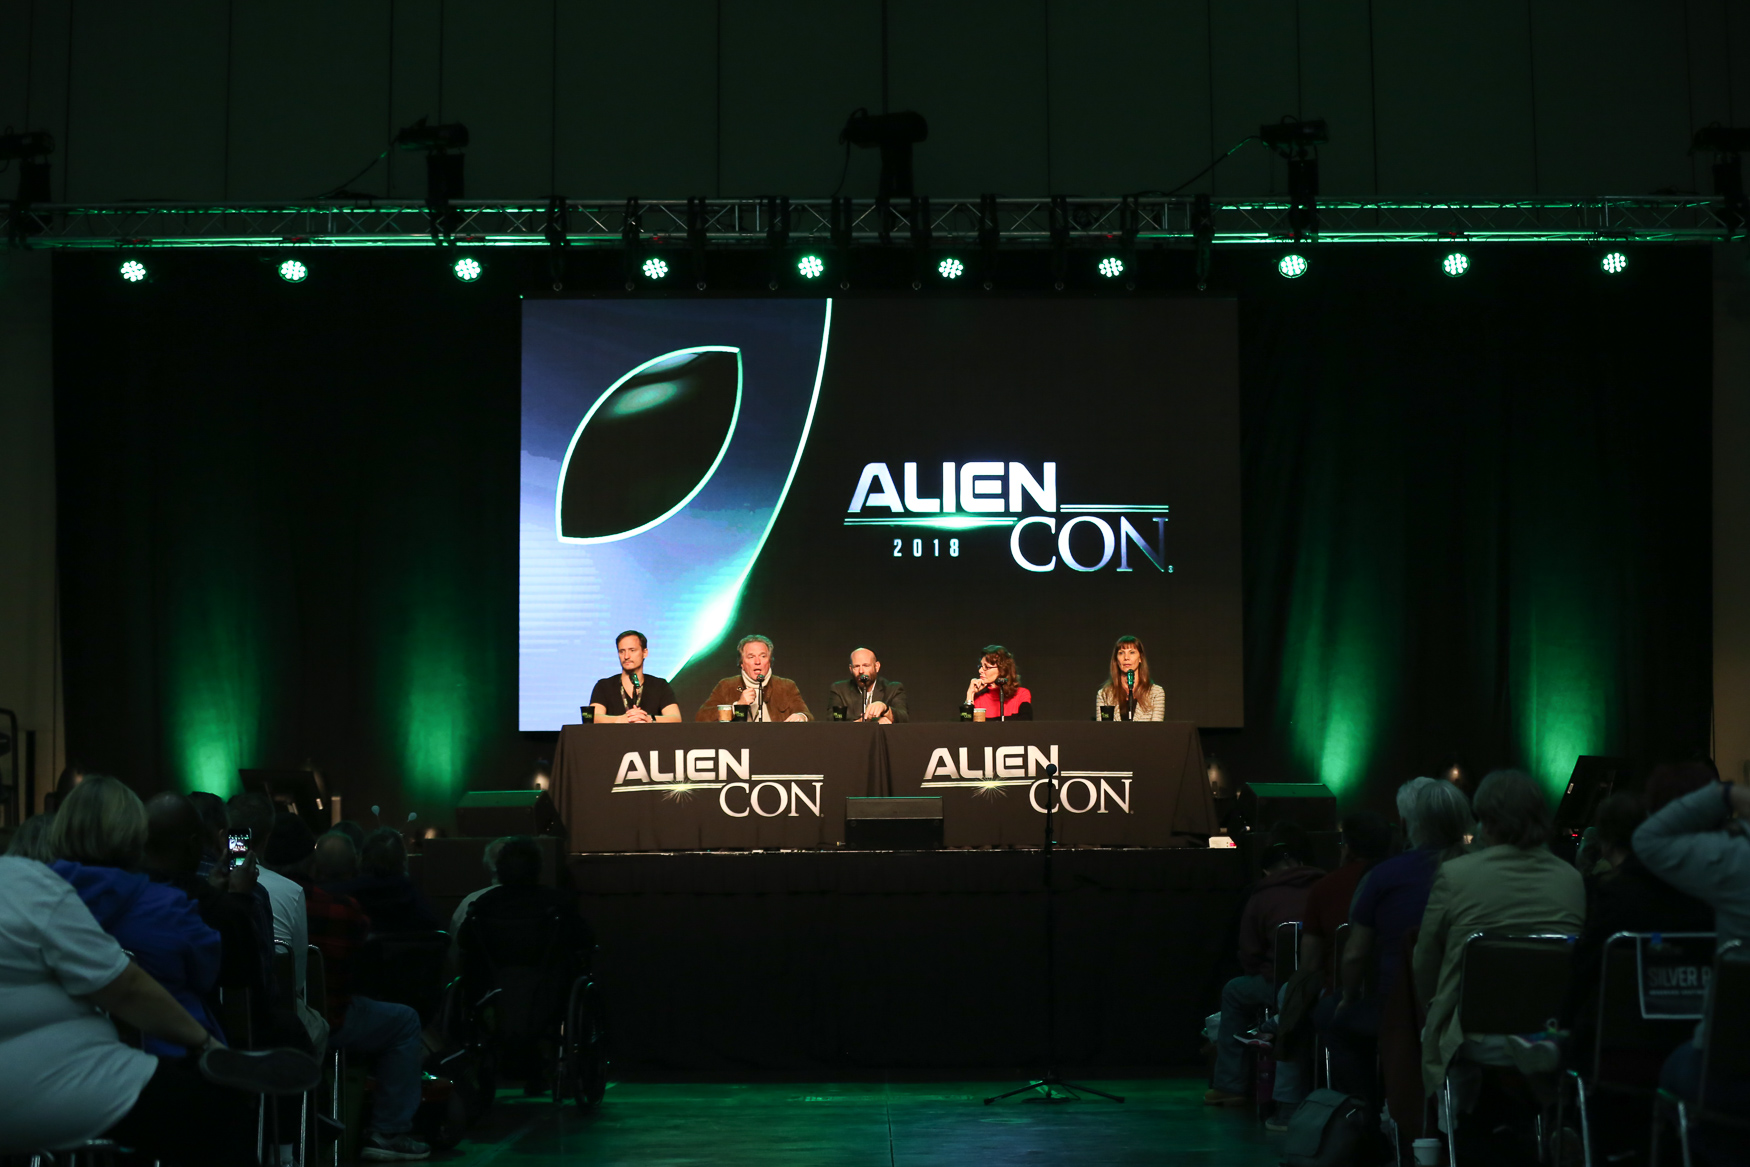 An invasion came to Baltimore this weekend in the form of AlienCon, a three-day convention focused on aliens. The convention, which is also held in Pasadena, California, featured speakers like{ }Giorgio A. Tsoukalos from History Channel's 'Ancient Aliens', actors from Star Trek and paranormal researchers with enthusiastic fan bases. Although the convention was geared towards believers more than skeptics, people from every walk of life lined up to learn about topics like alien abductions and how extraterrestrials allegedly helped build Stonehenge. (Amanda Andrade-Rhoades)